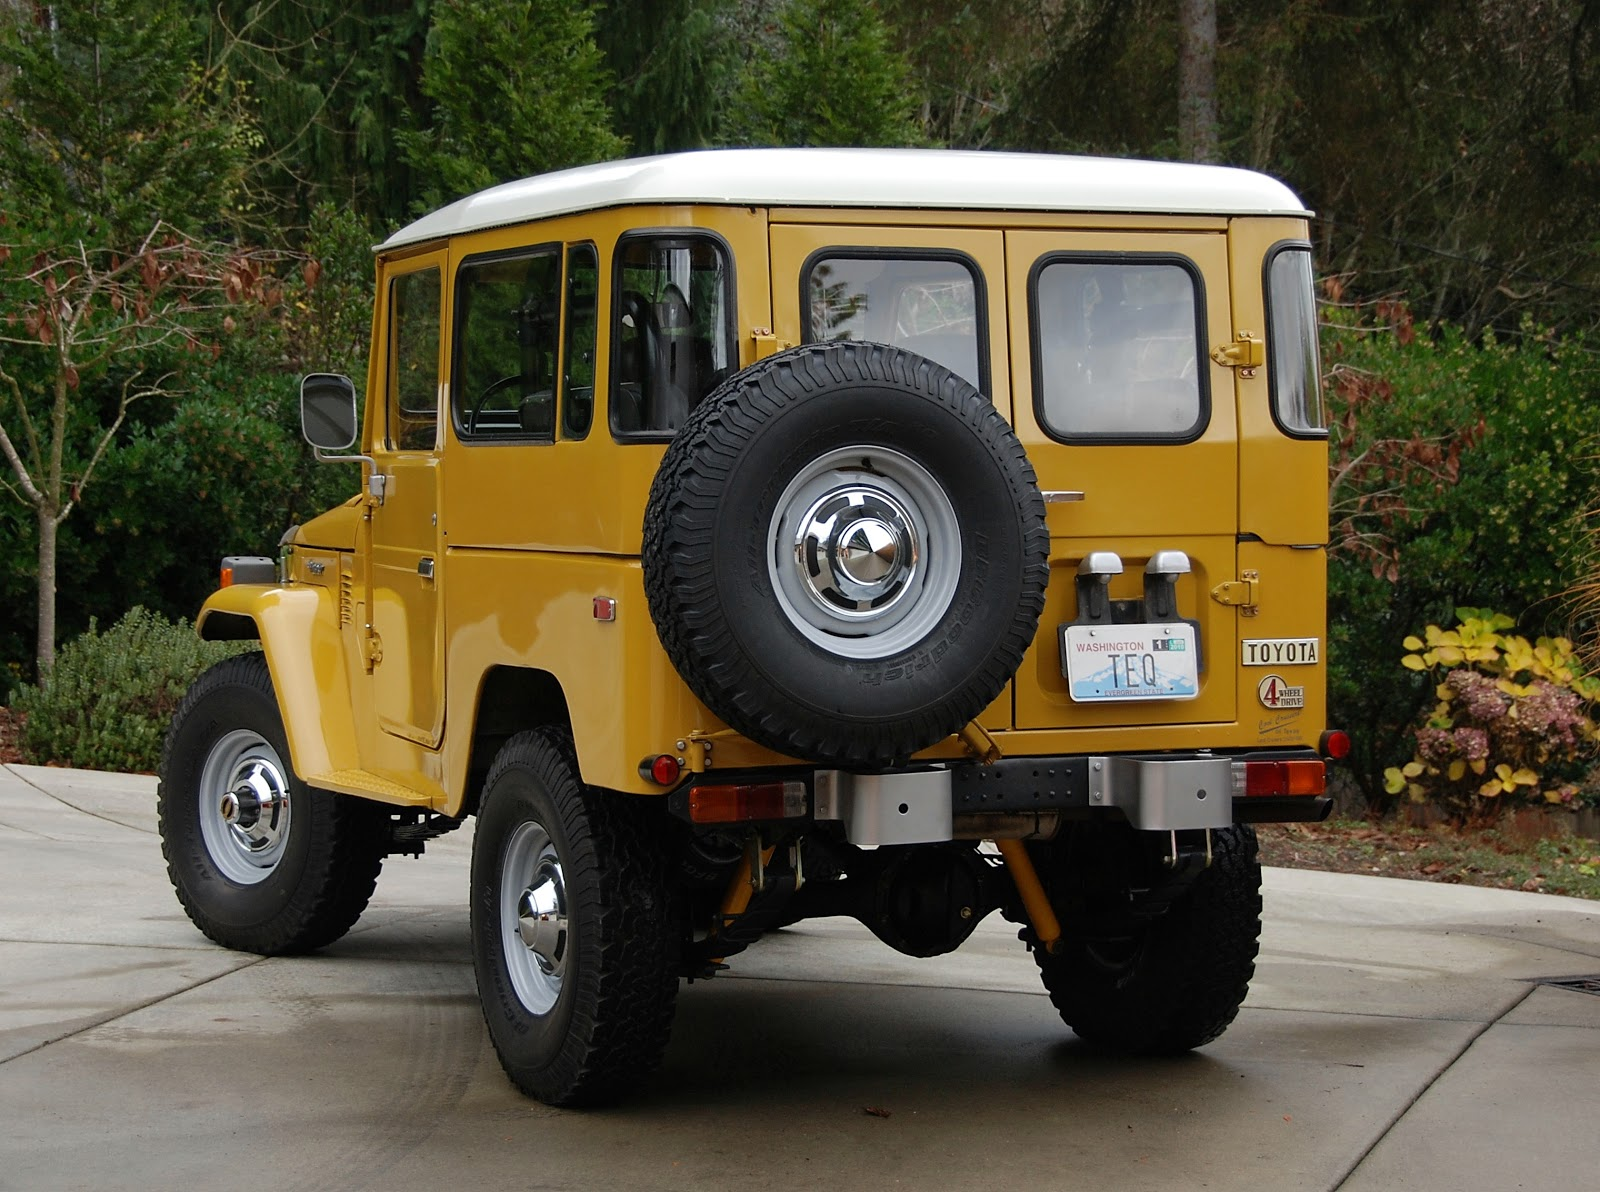 Chassis and body repair pdf) Toyota Land Cruiser FJ40, FJ43, FJ45, FJ55.pdf  manual. This chassis and body repair pdf,s manual is divided ...